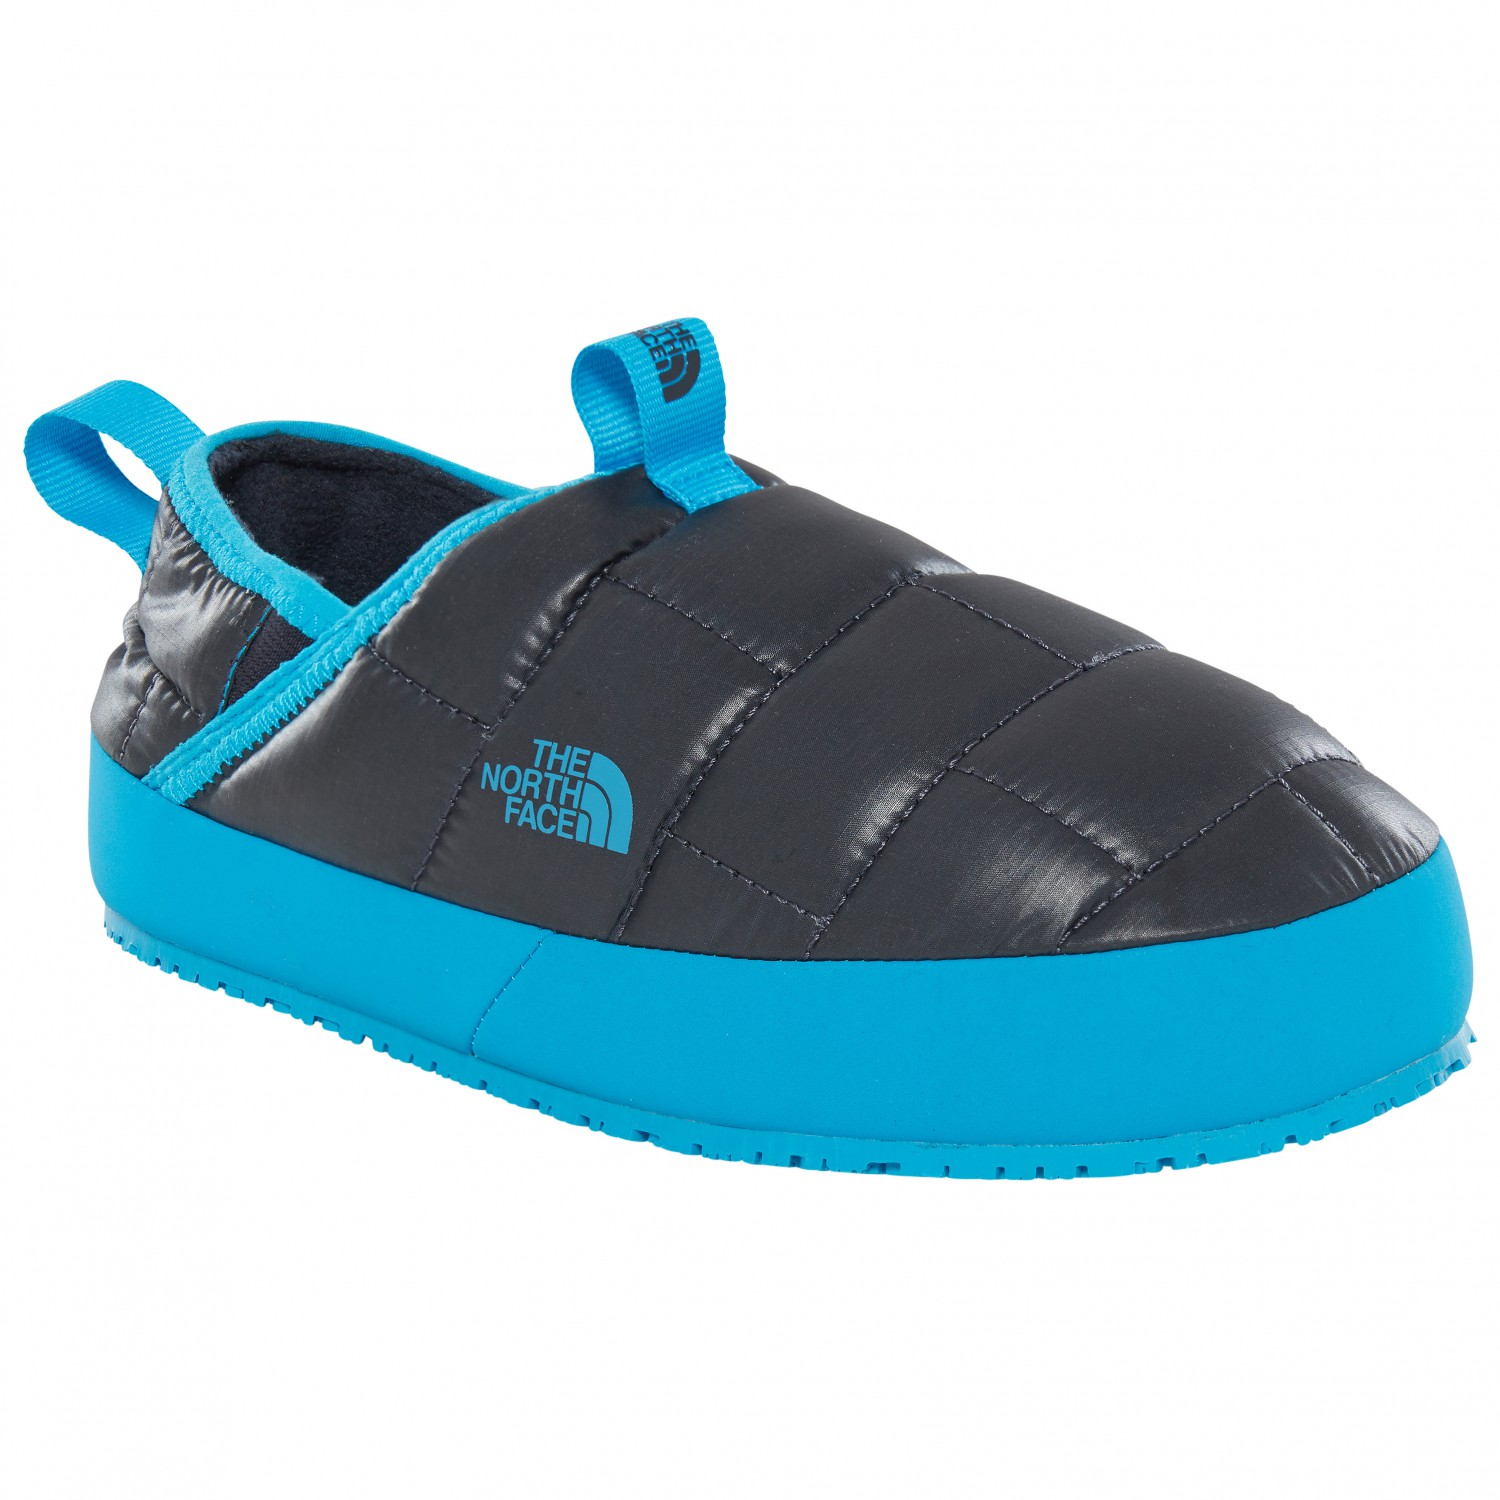 The North Face Youth Thermal Tent Mule II - Pantofole Bambini ... 41275789c8dc